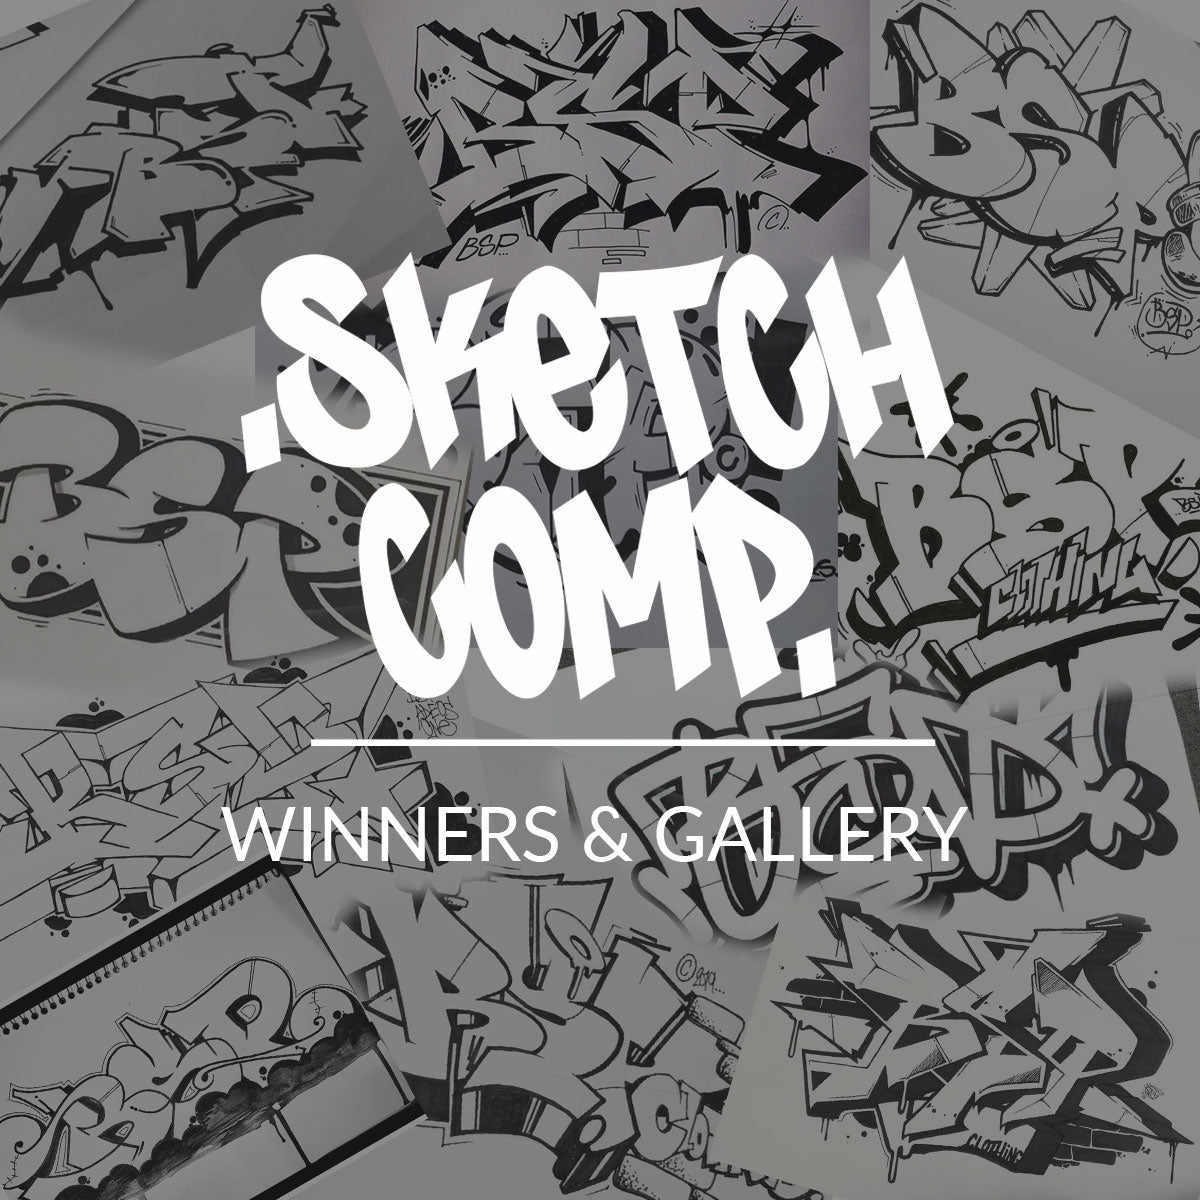 SKETCH COMP WINNERS & GALLERY